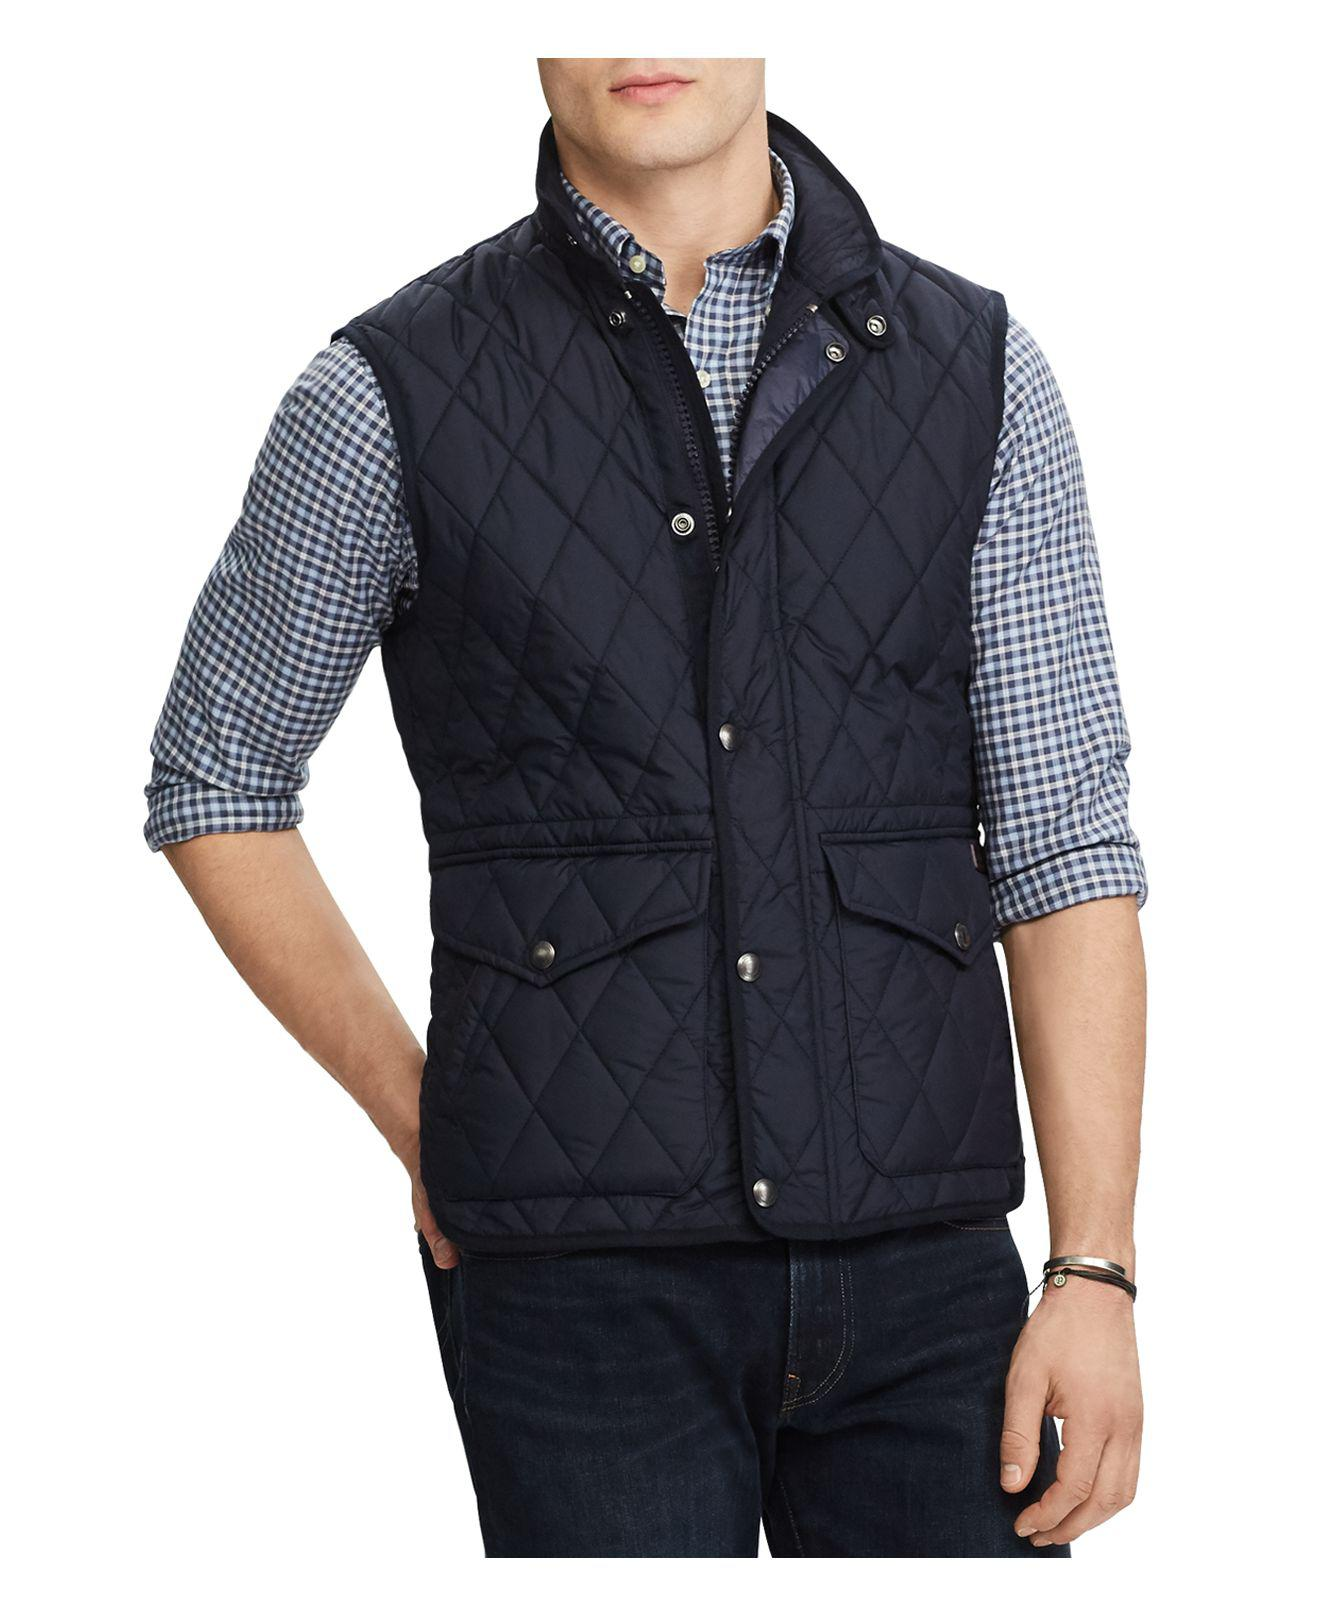 Lyst - Polo Ralph Lauren Iconic Quilted Vest in Blue for Men